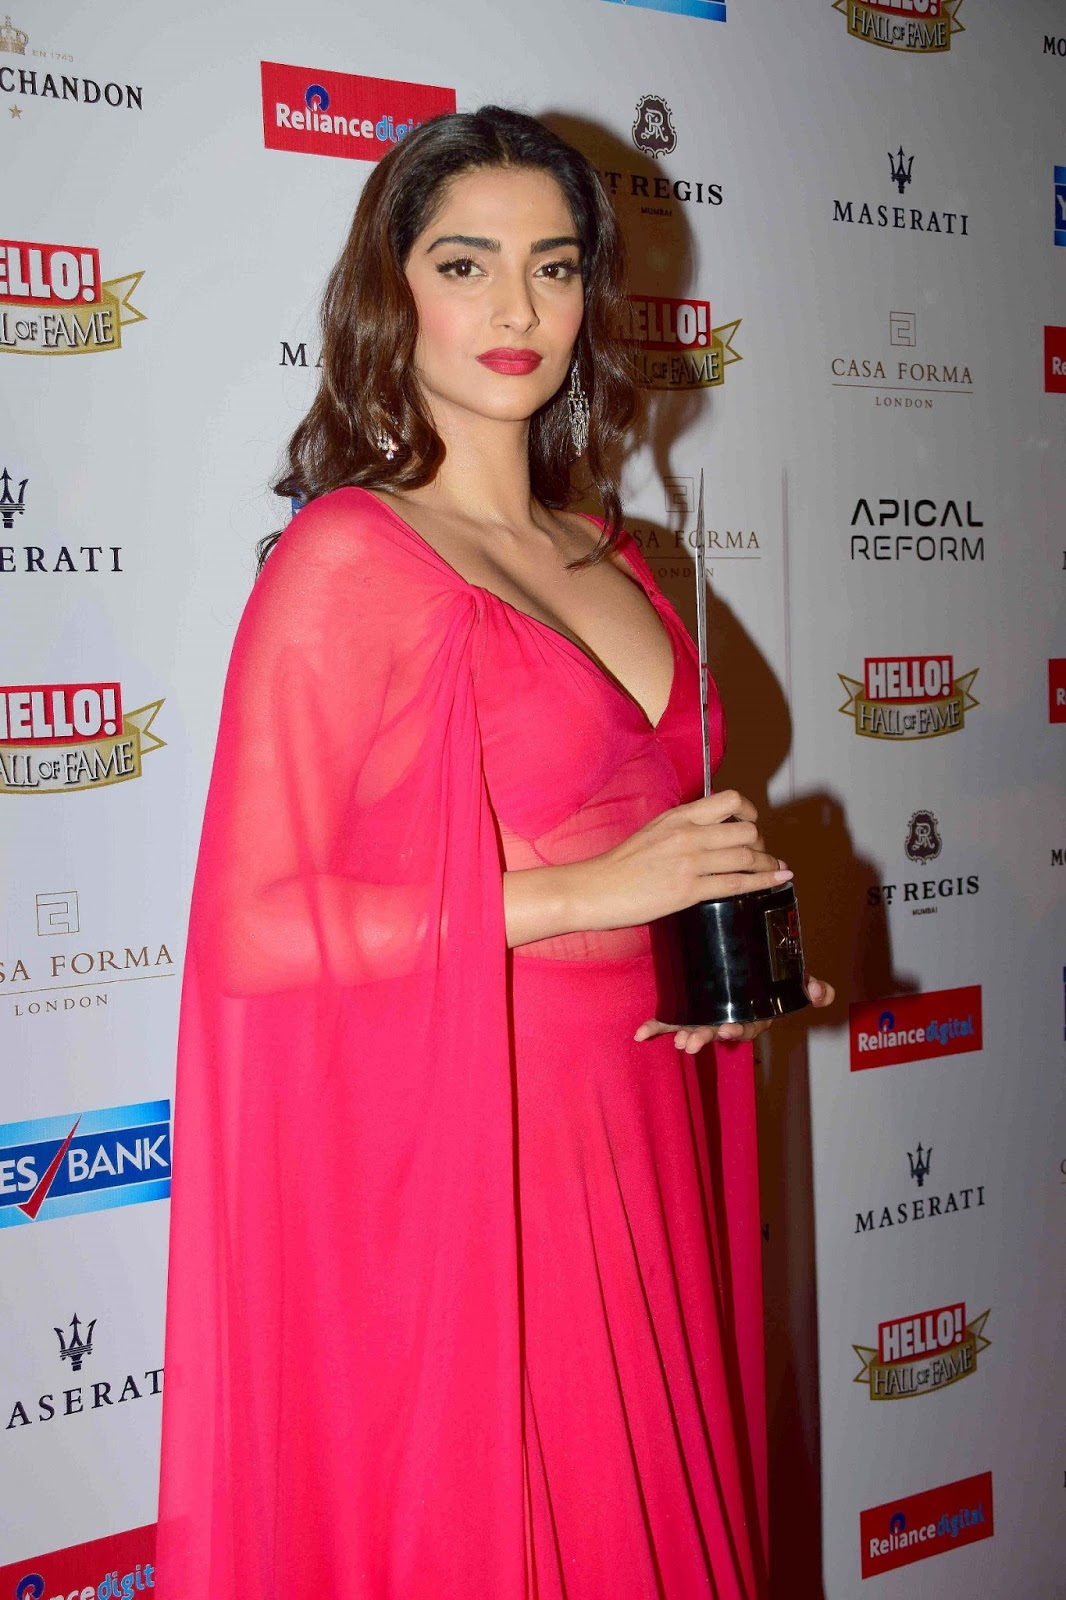 Gorgeous Bollywood Girl Sonam Kapoor Hot Photos In Pink Dress